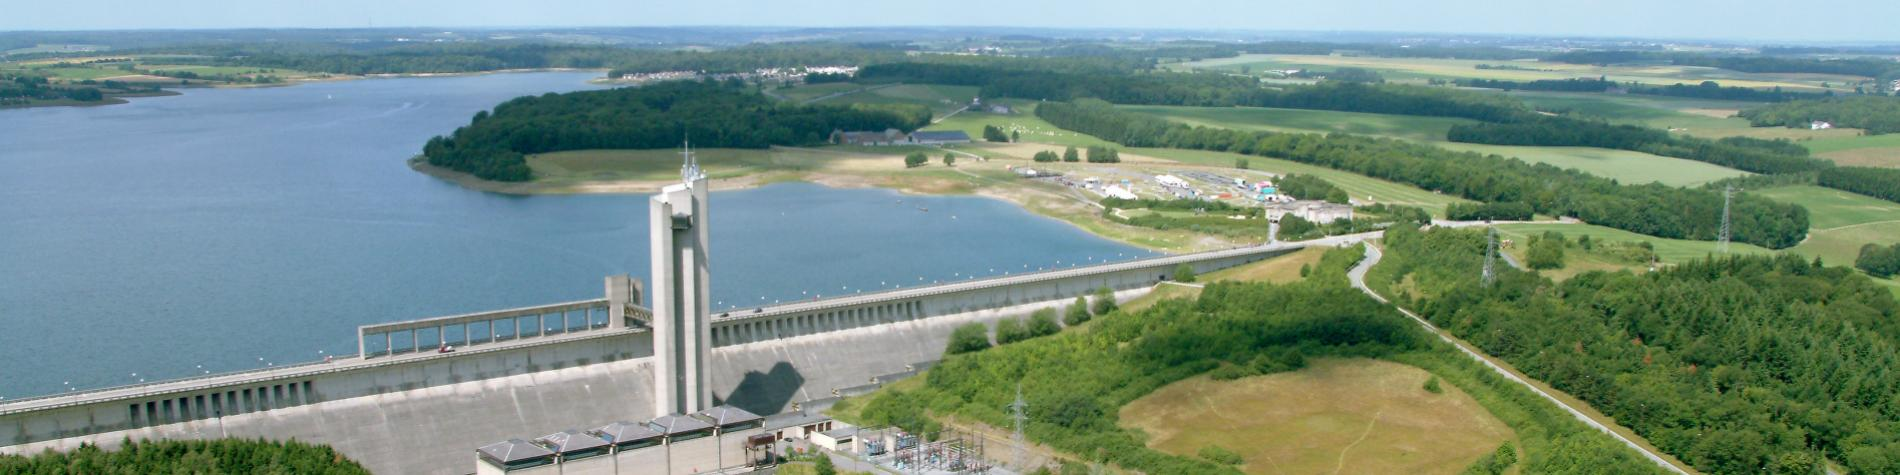 Discover the Eau d'Heure lakes, the Plate Taille dam at Boussu-lez-Walcourt